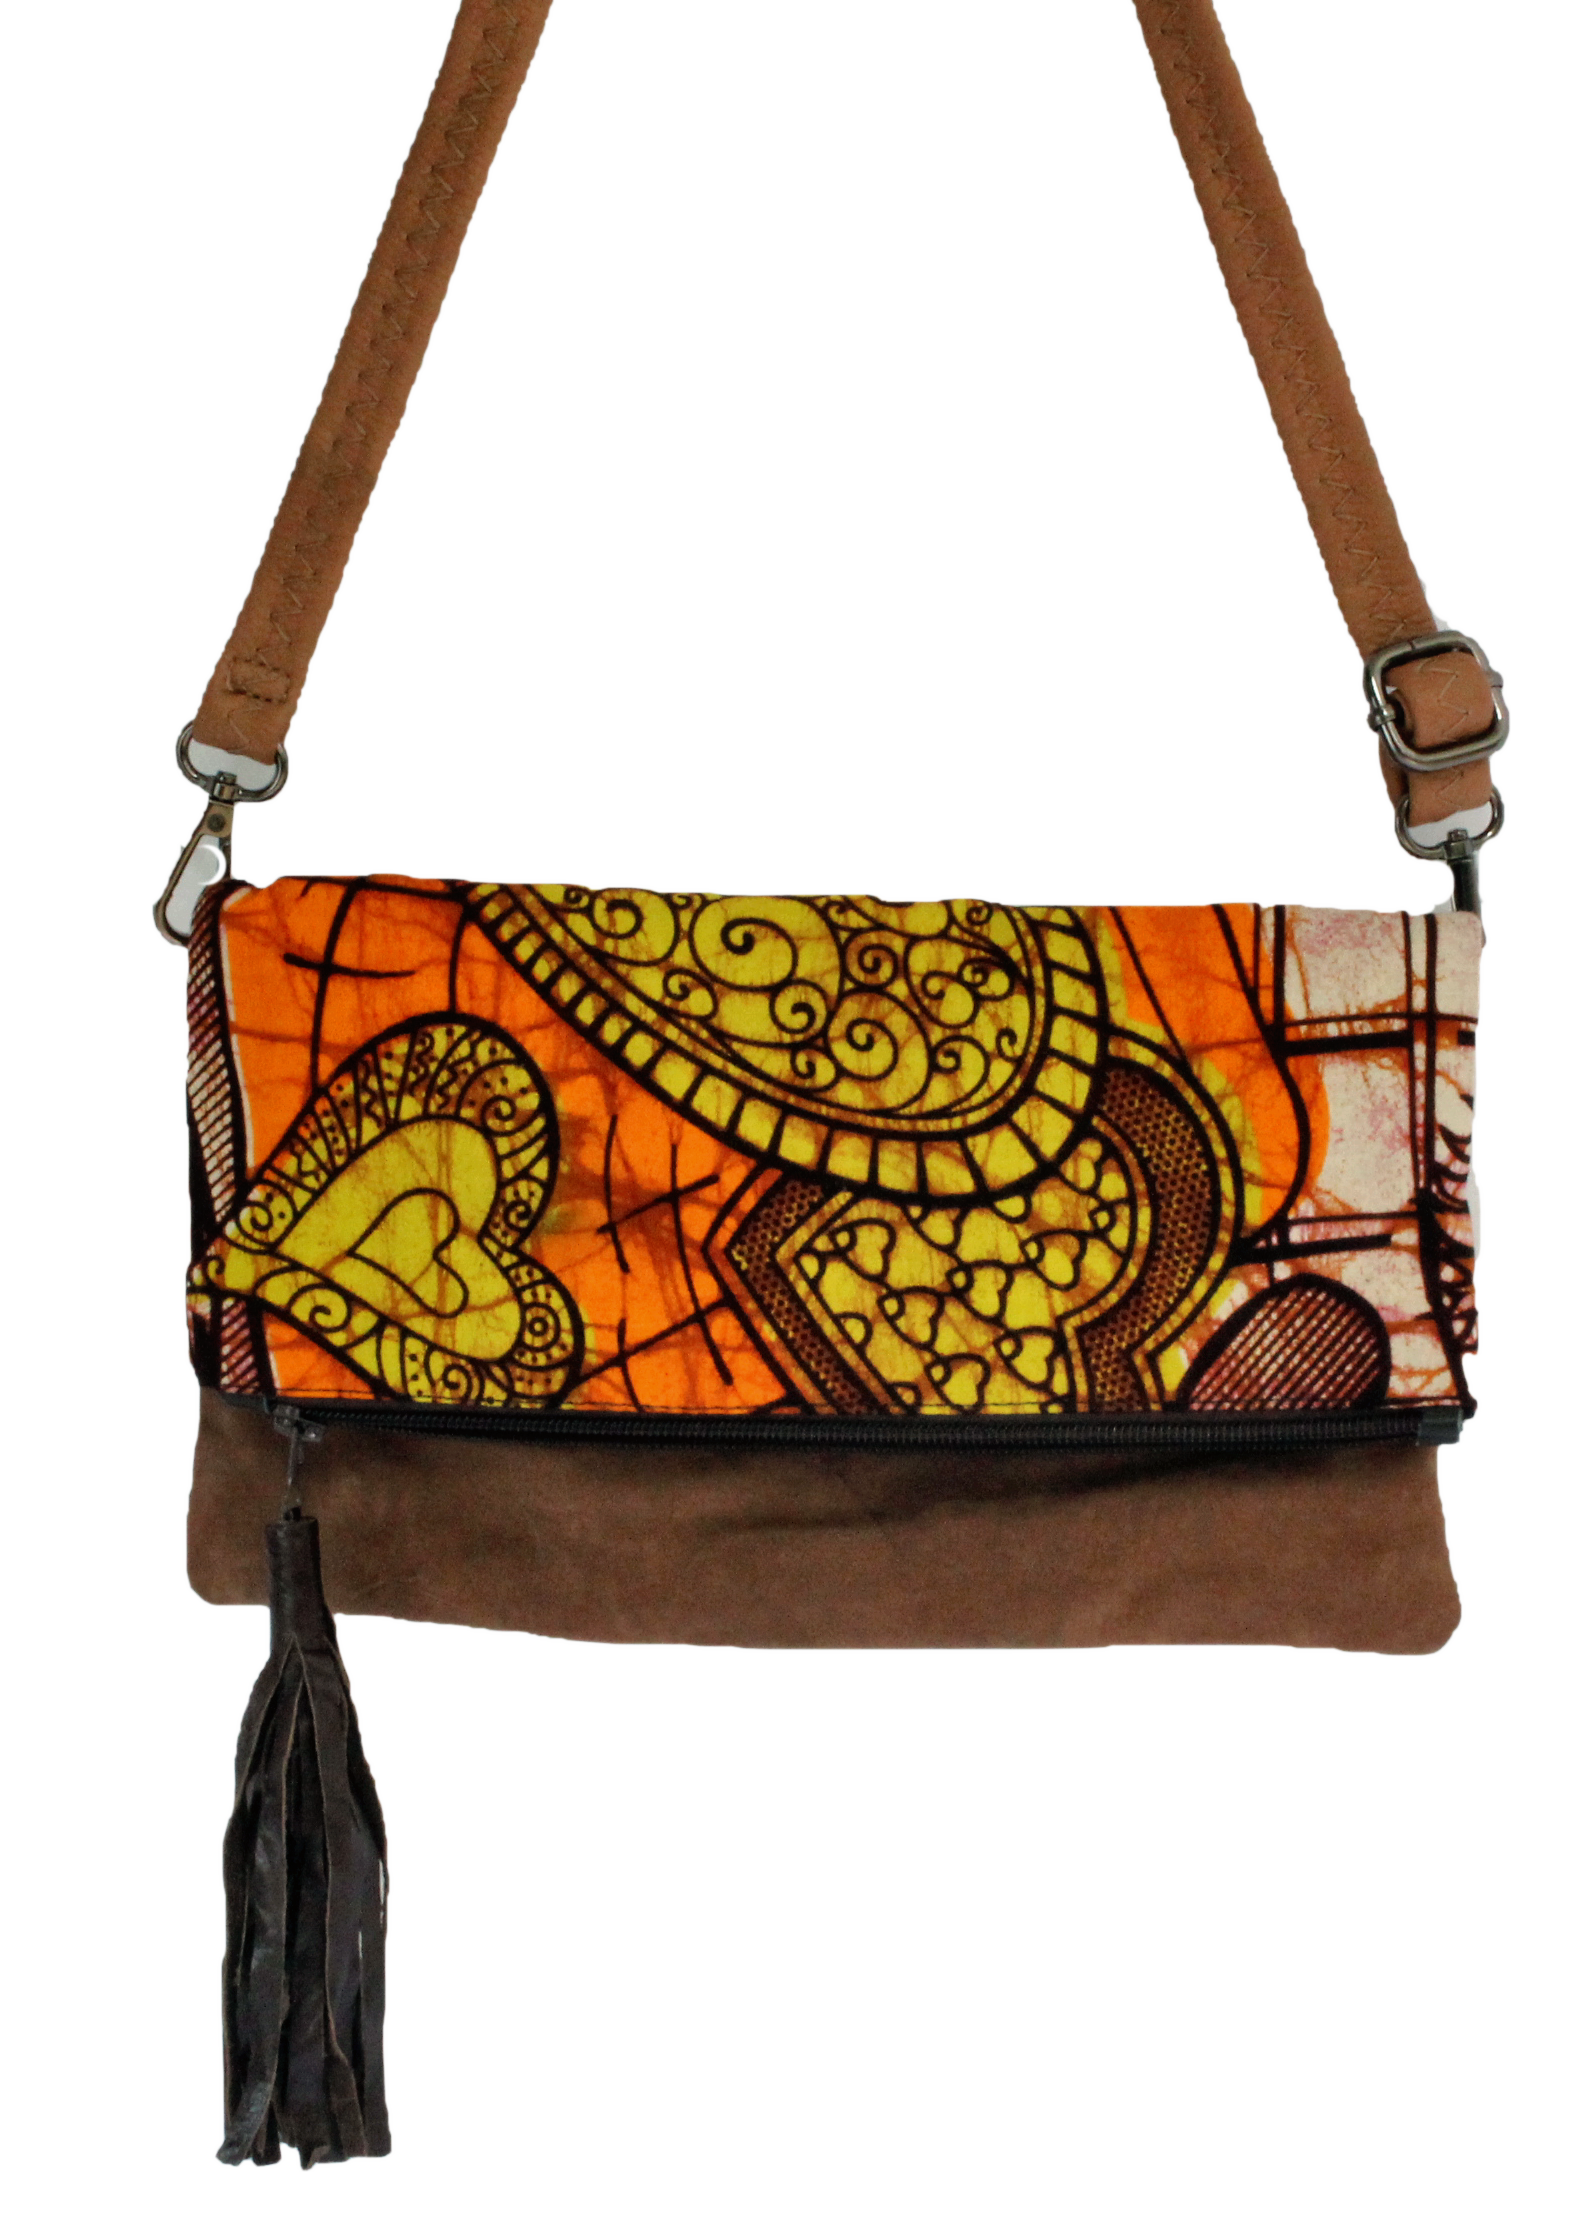 Handmade crossbody bag, upcycled leather, African print, Kitenge fashion, Ankara fashion, brown suede